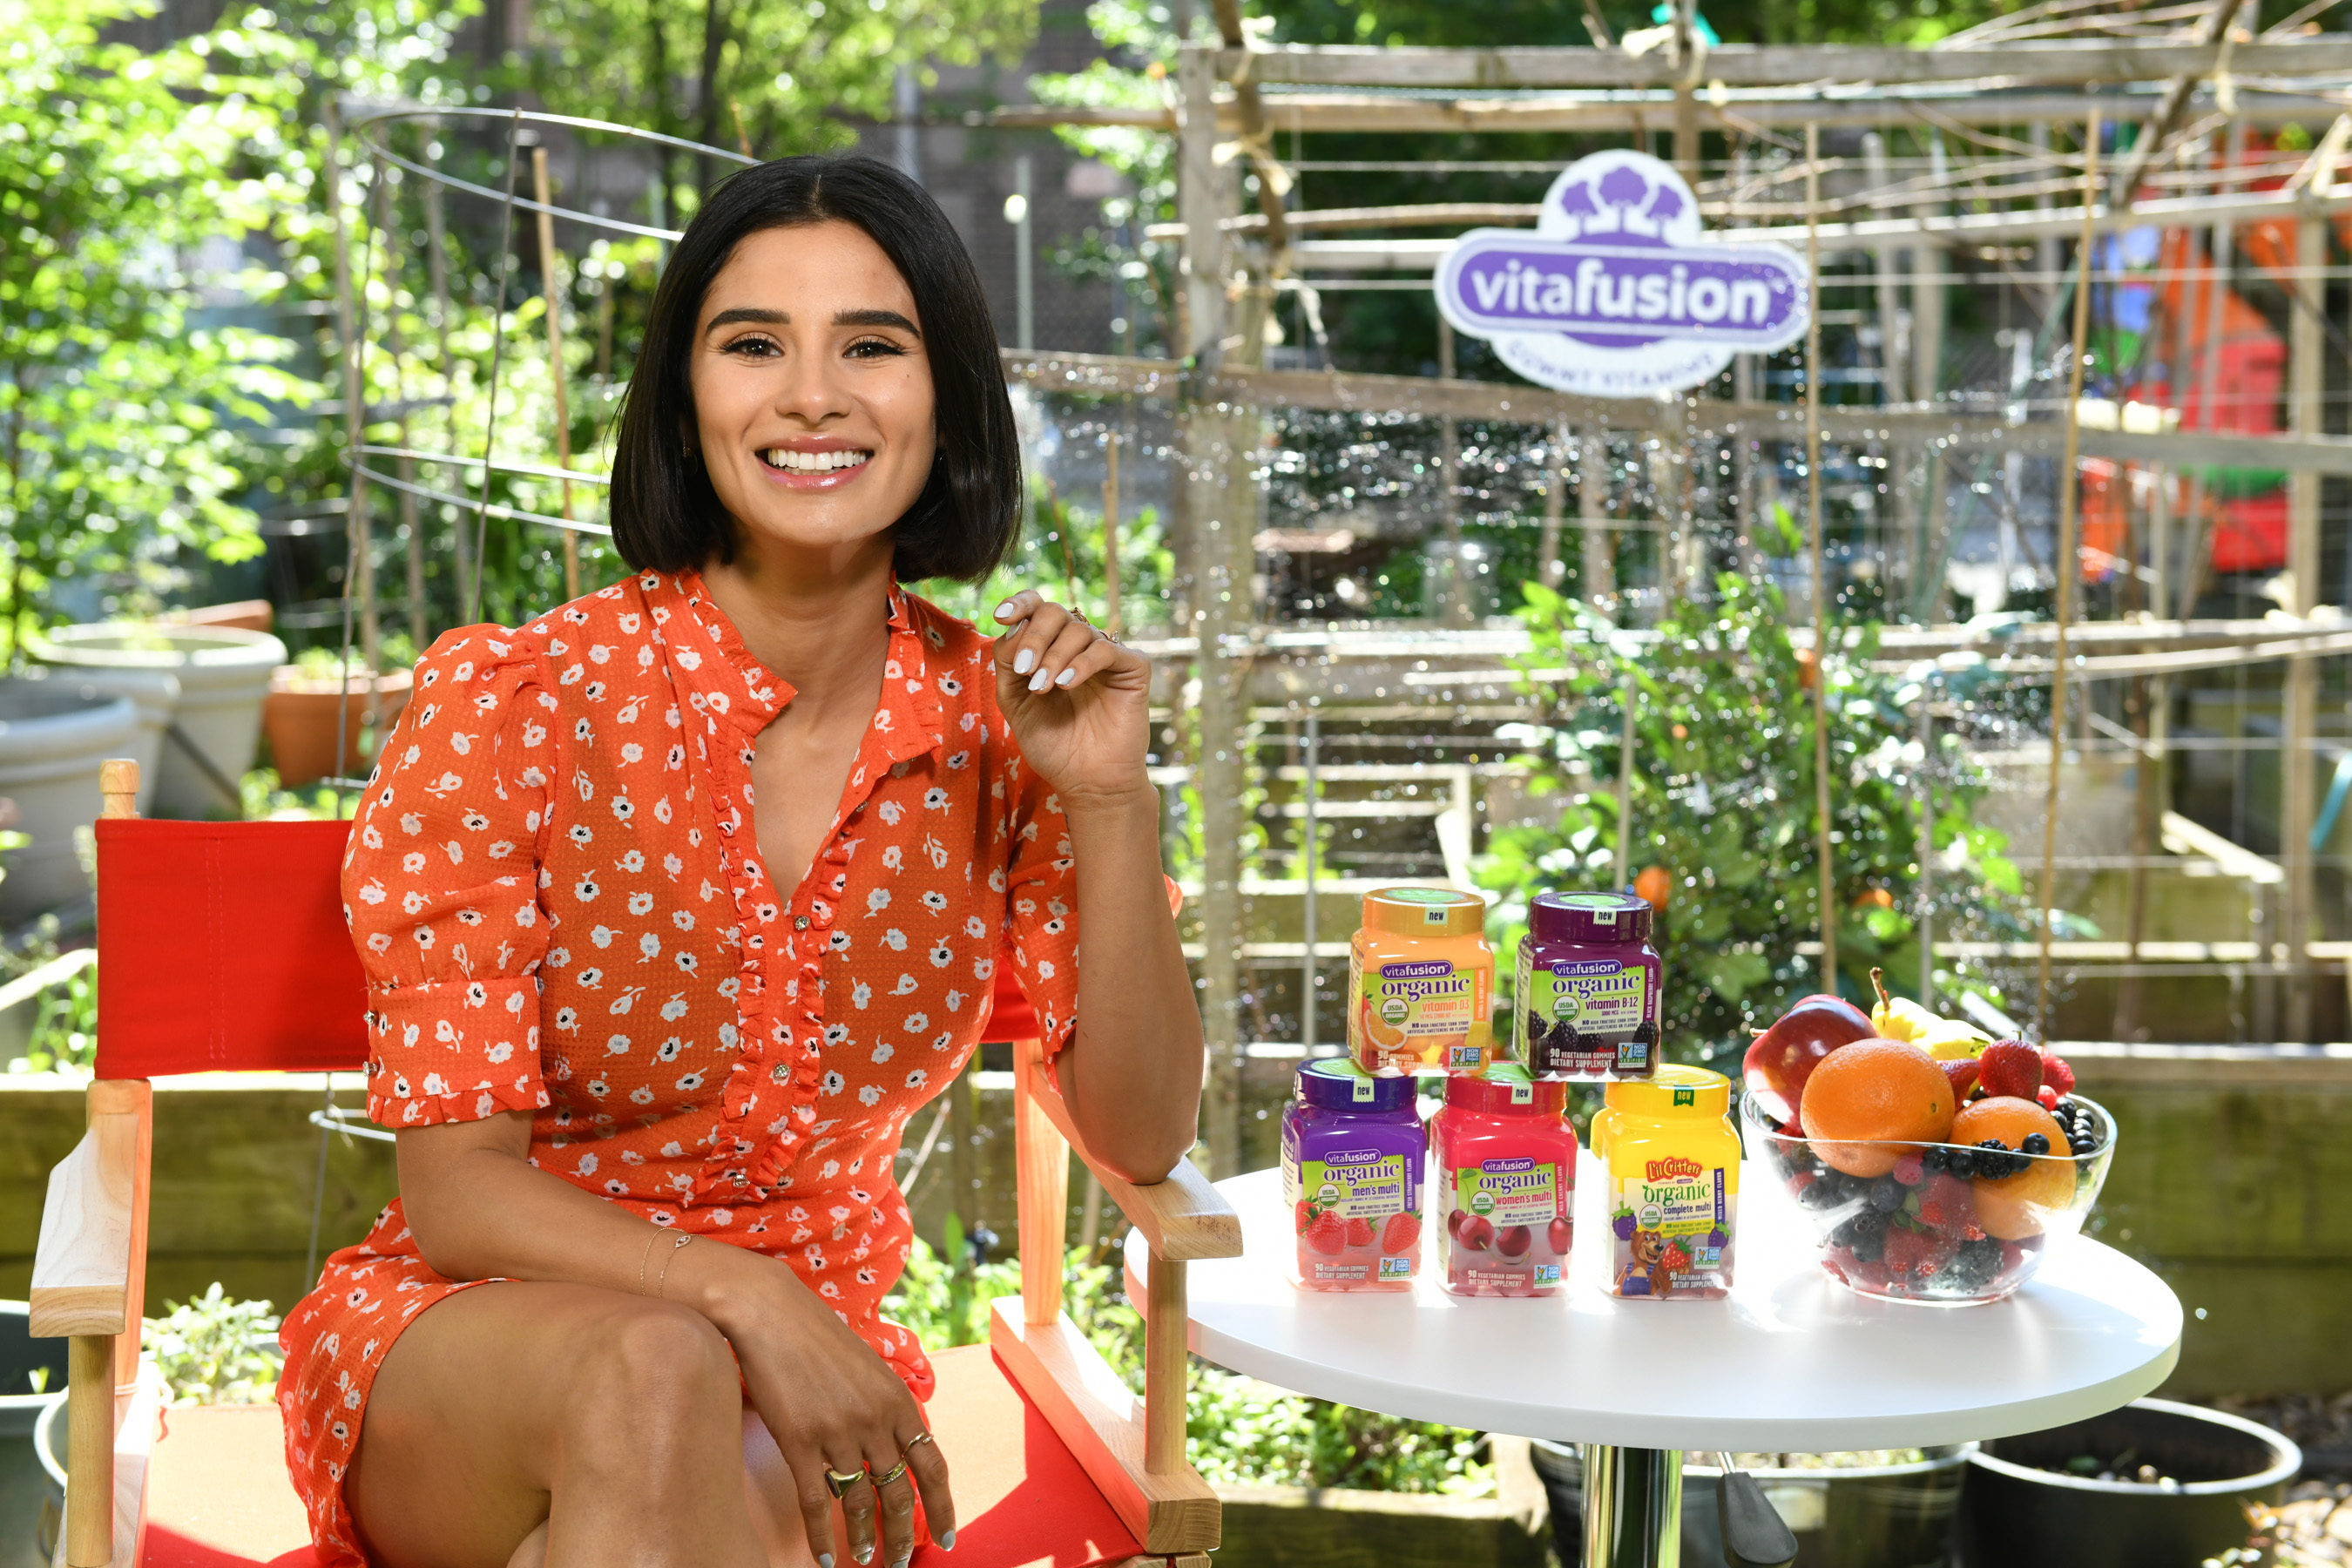 Actress Diane Guerrero Joins vitafusion™ and The Fruit Tree Planting Foundation's Commitment to Planting 200,000 Fruit Trees By 2020